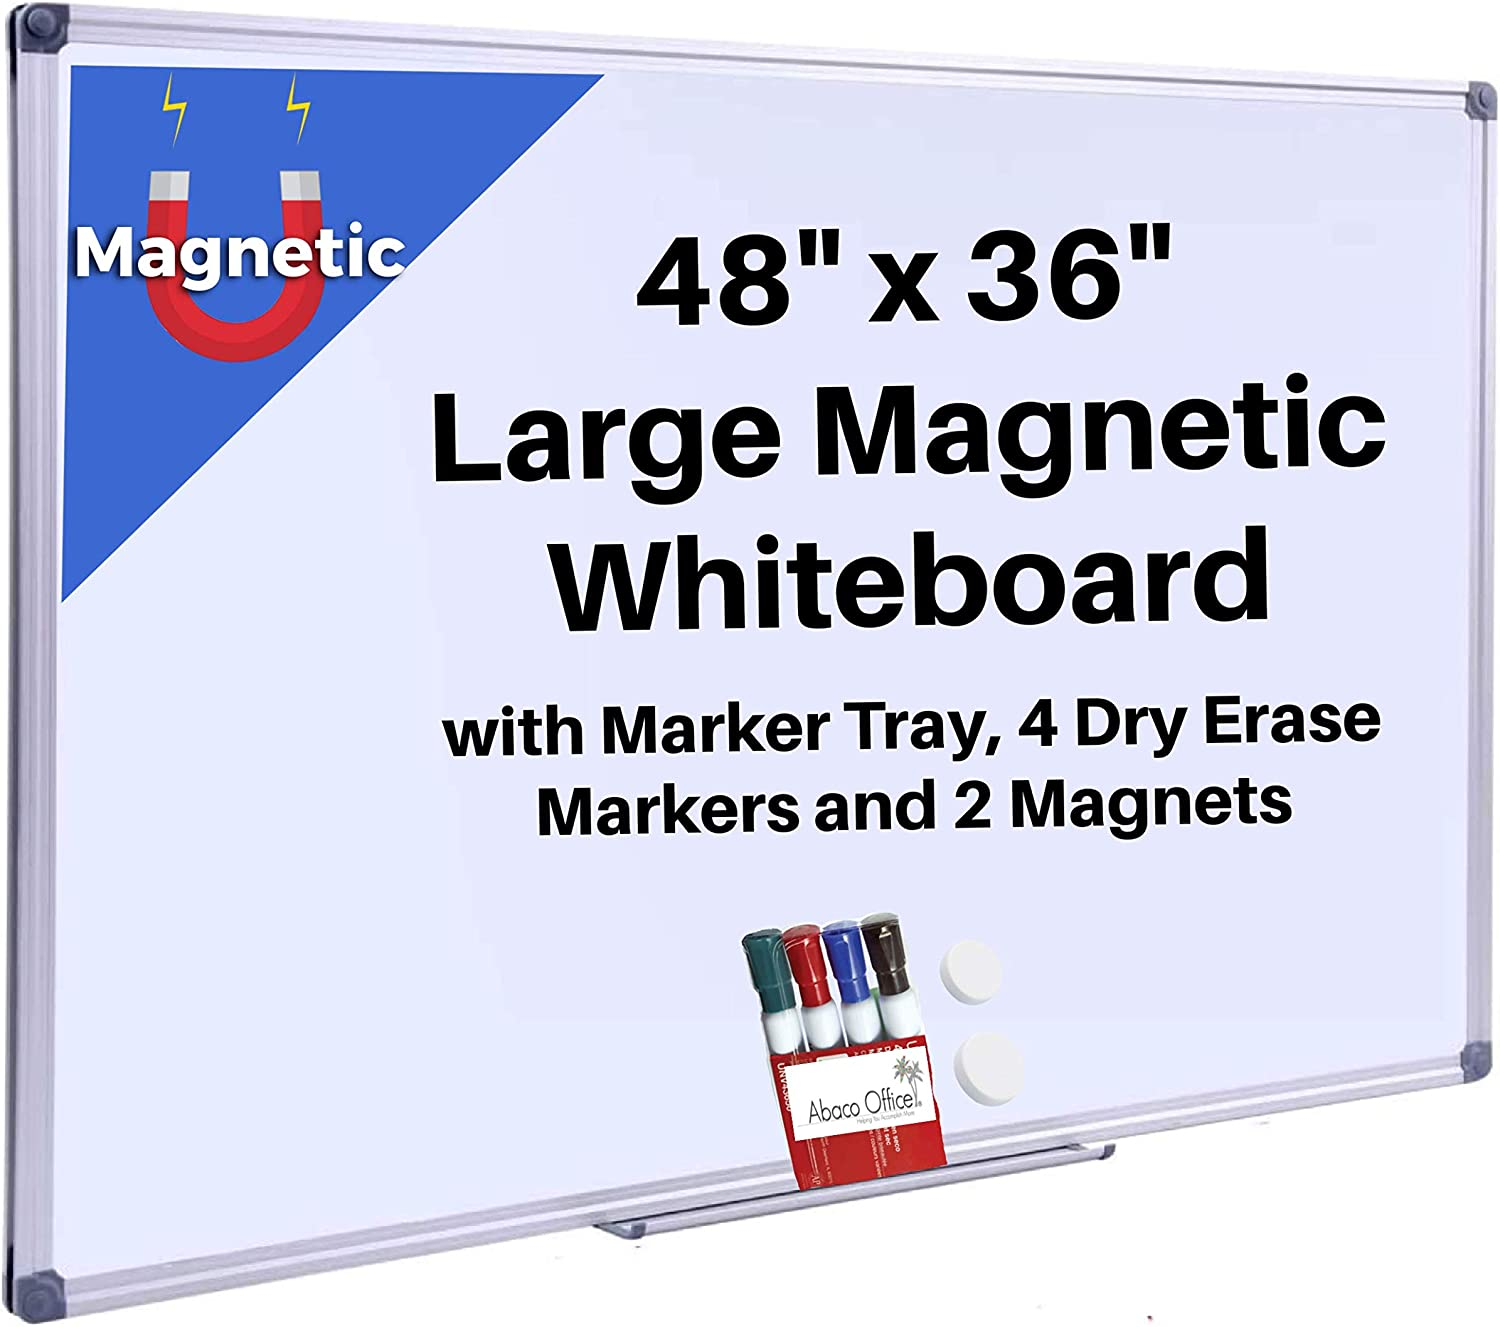 ABACO OFFICE Magnetic Whiteboard Dry Erase Board   4 Free Markers + 2 Magnets + 1 Removable Marker Tray   White Board for Home, Office, Bedroom, 4 X 3 Feet, Silver Aluminum Frame